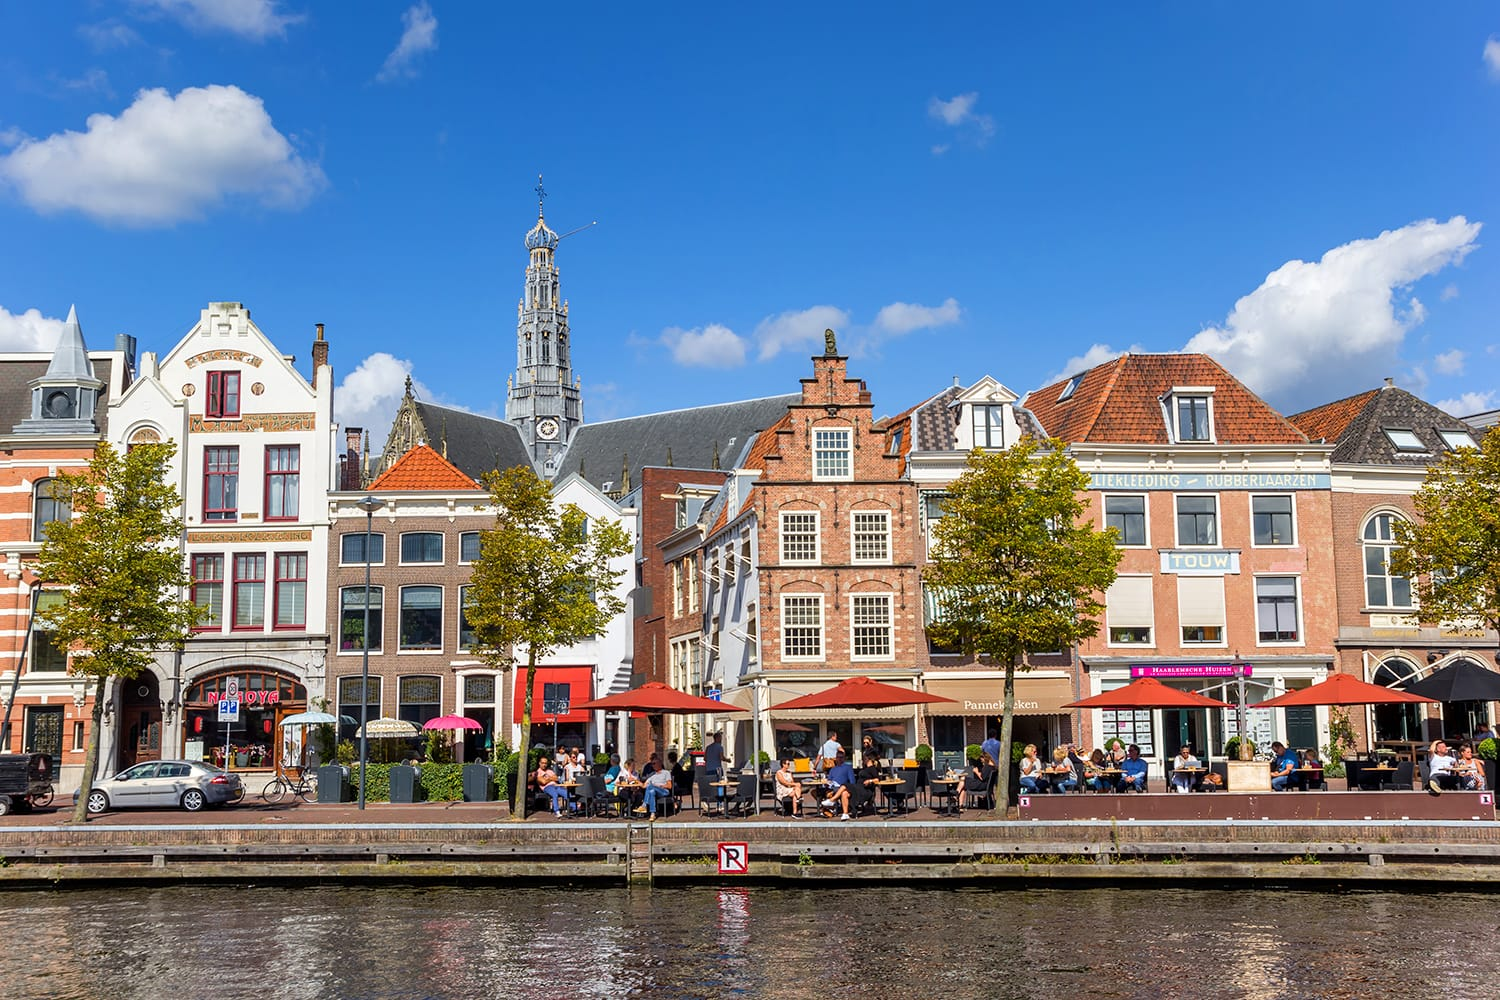 People enjoying the sun at a historic canal in Haarlem, Netherlands